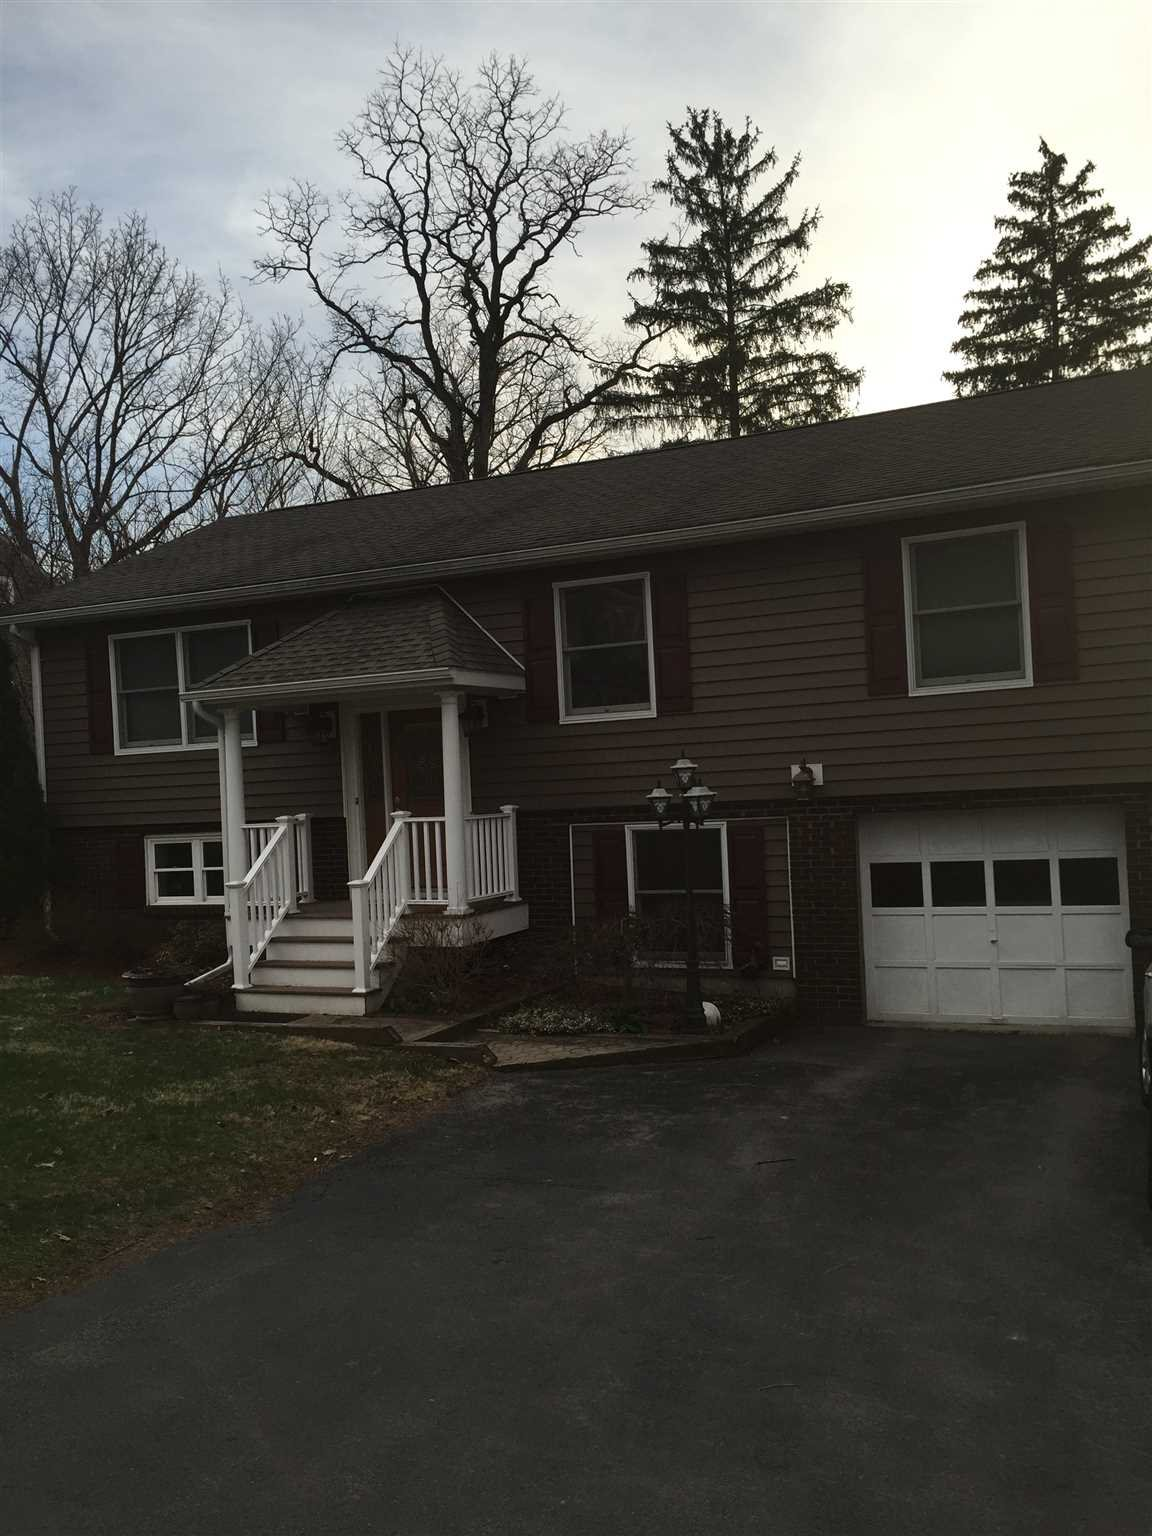 Additional photo for property listing at 612 ROUTE 52 612 ROUTE 52 Beacon, New York 12508 United States